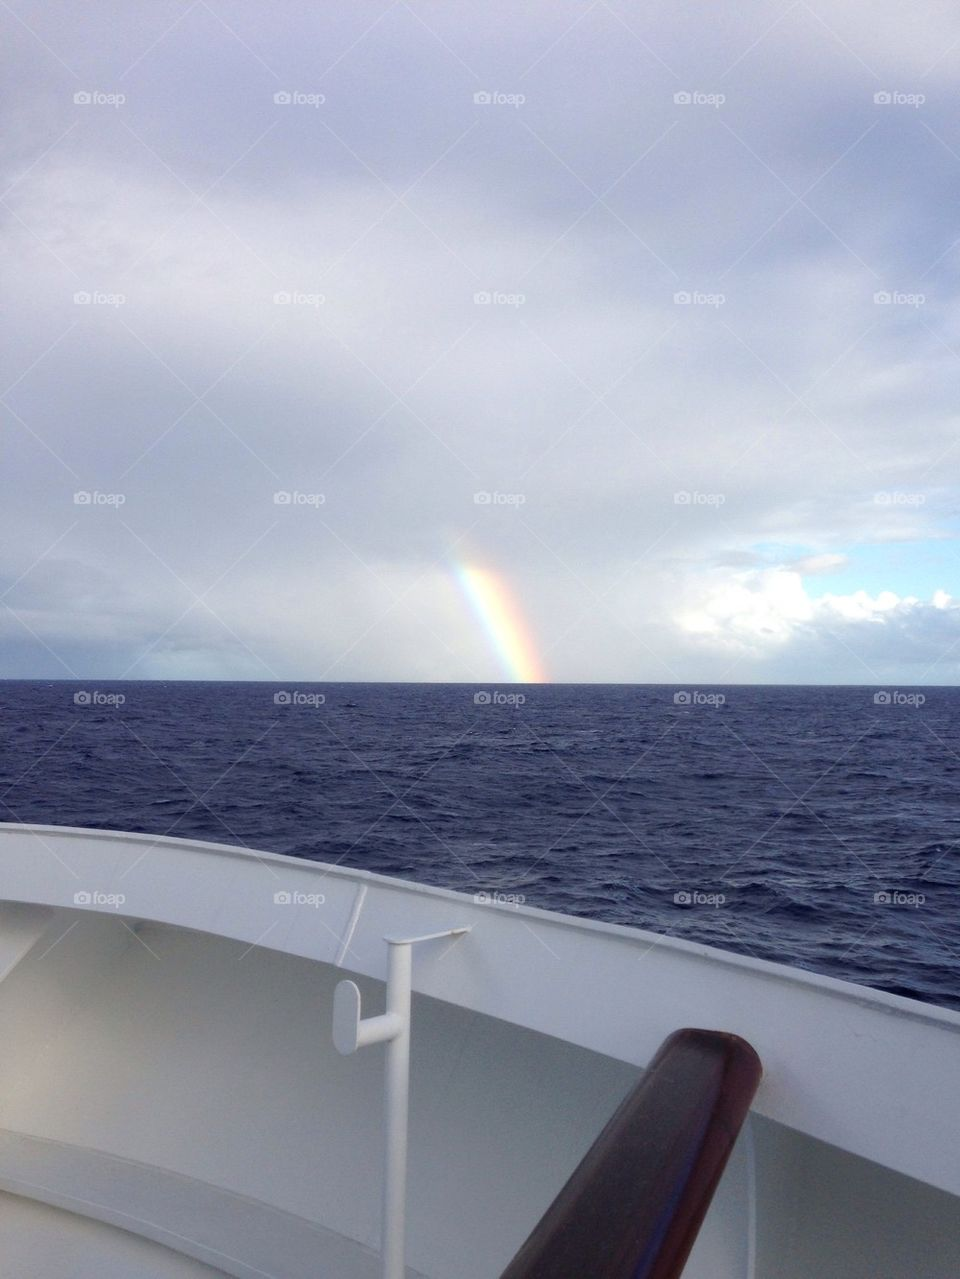 Rainbow in the ocean